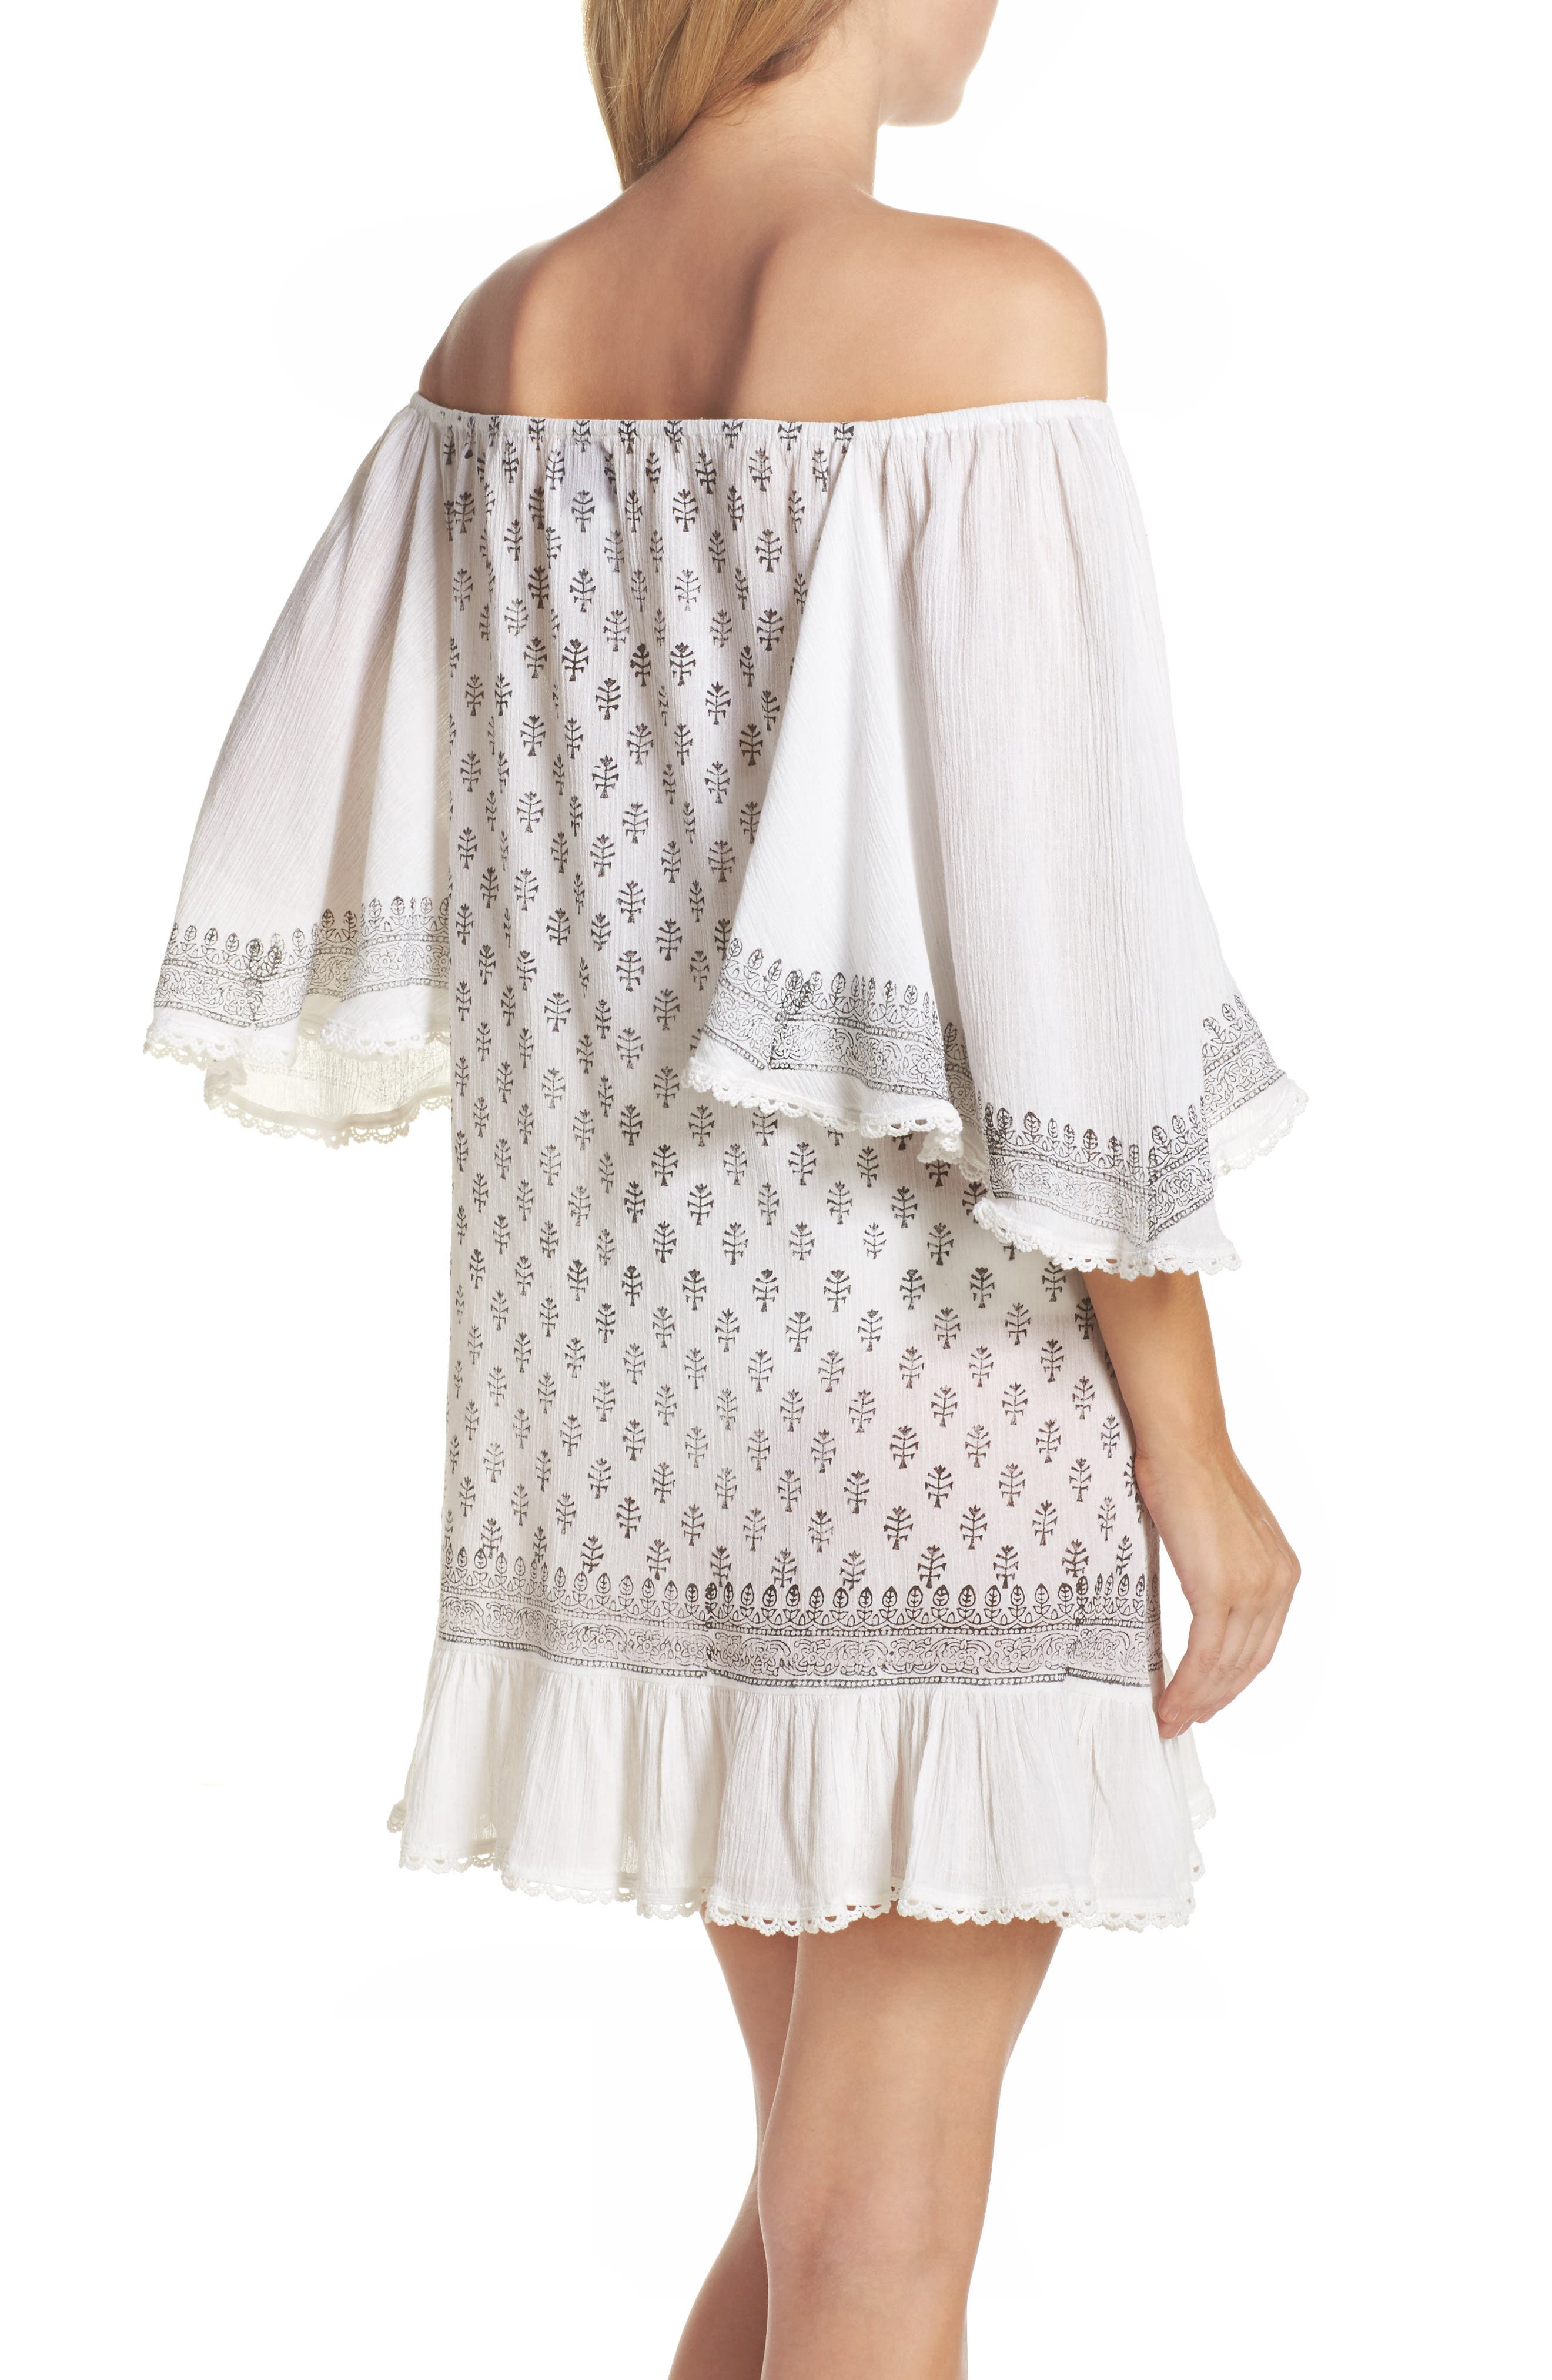 Dreamer Off the Shoulder Cover-Up Dress,                             Alternate thumbnail 2, color,                             White